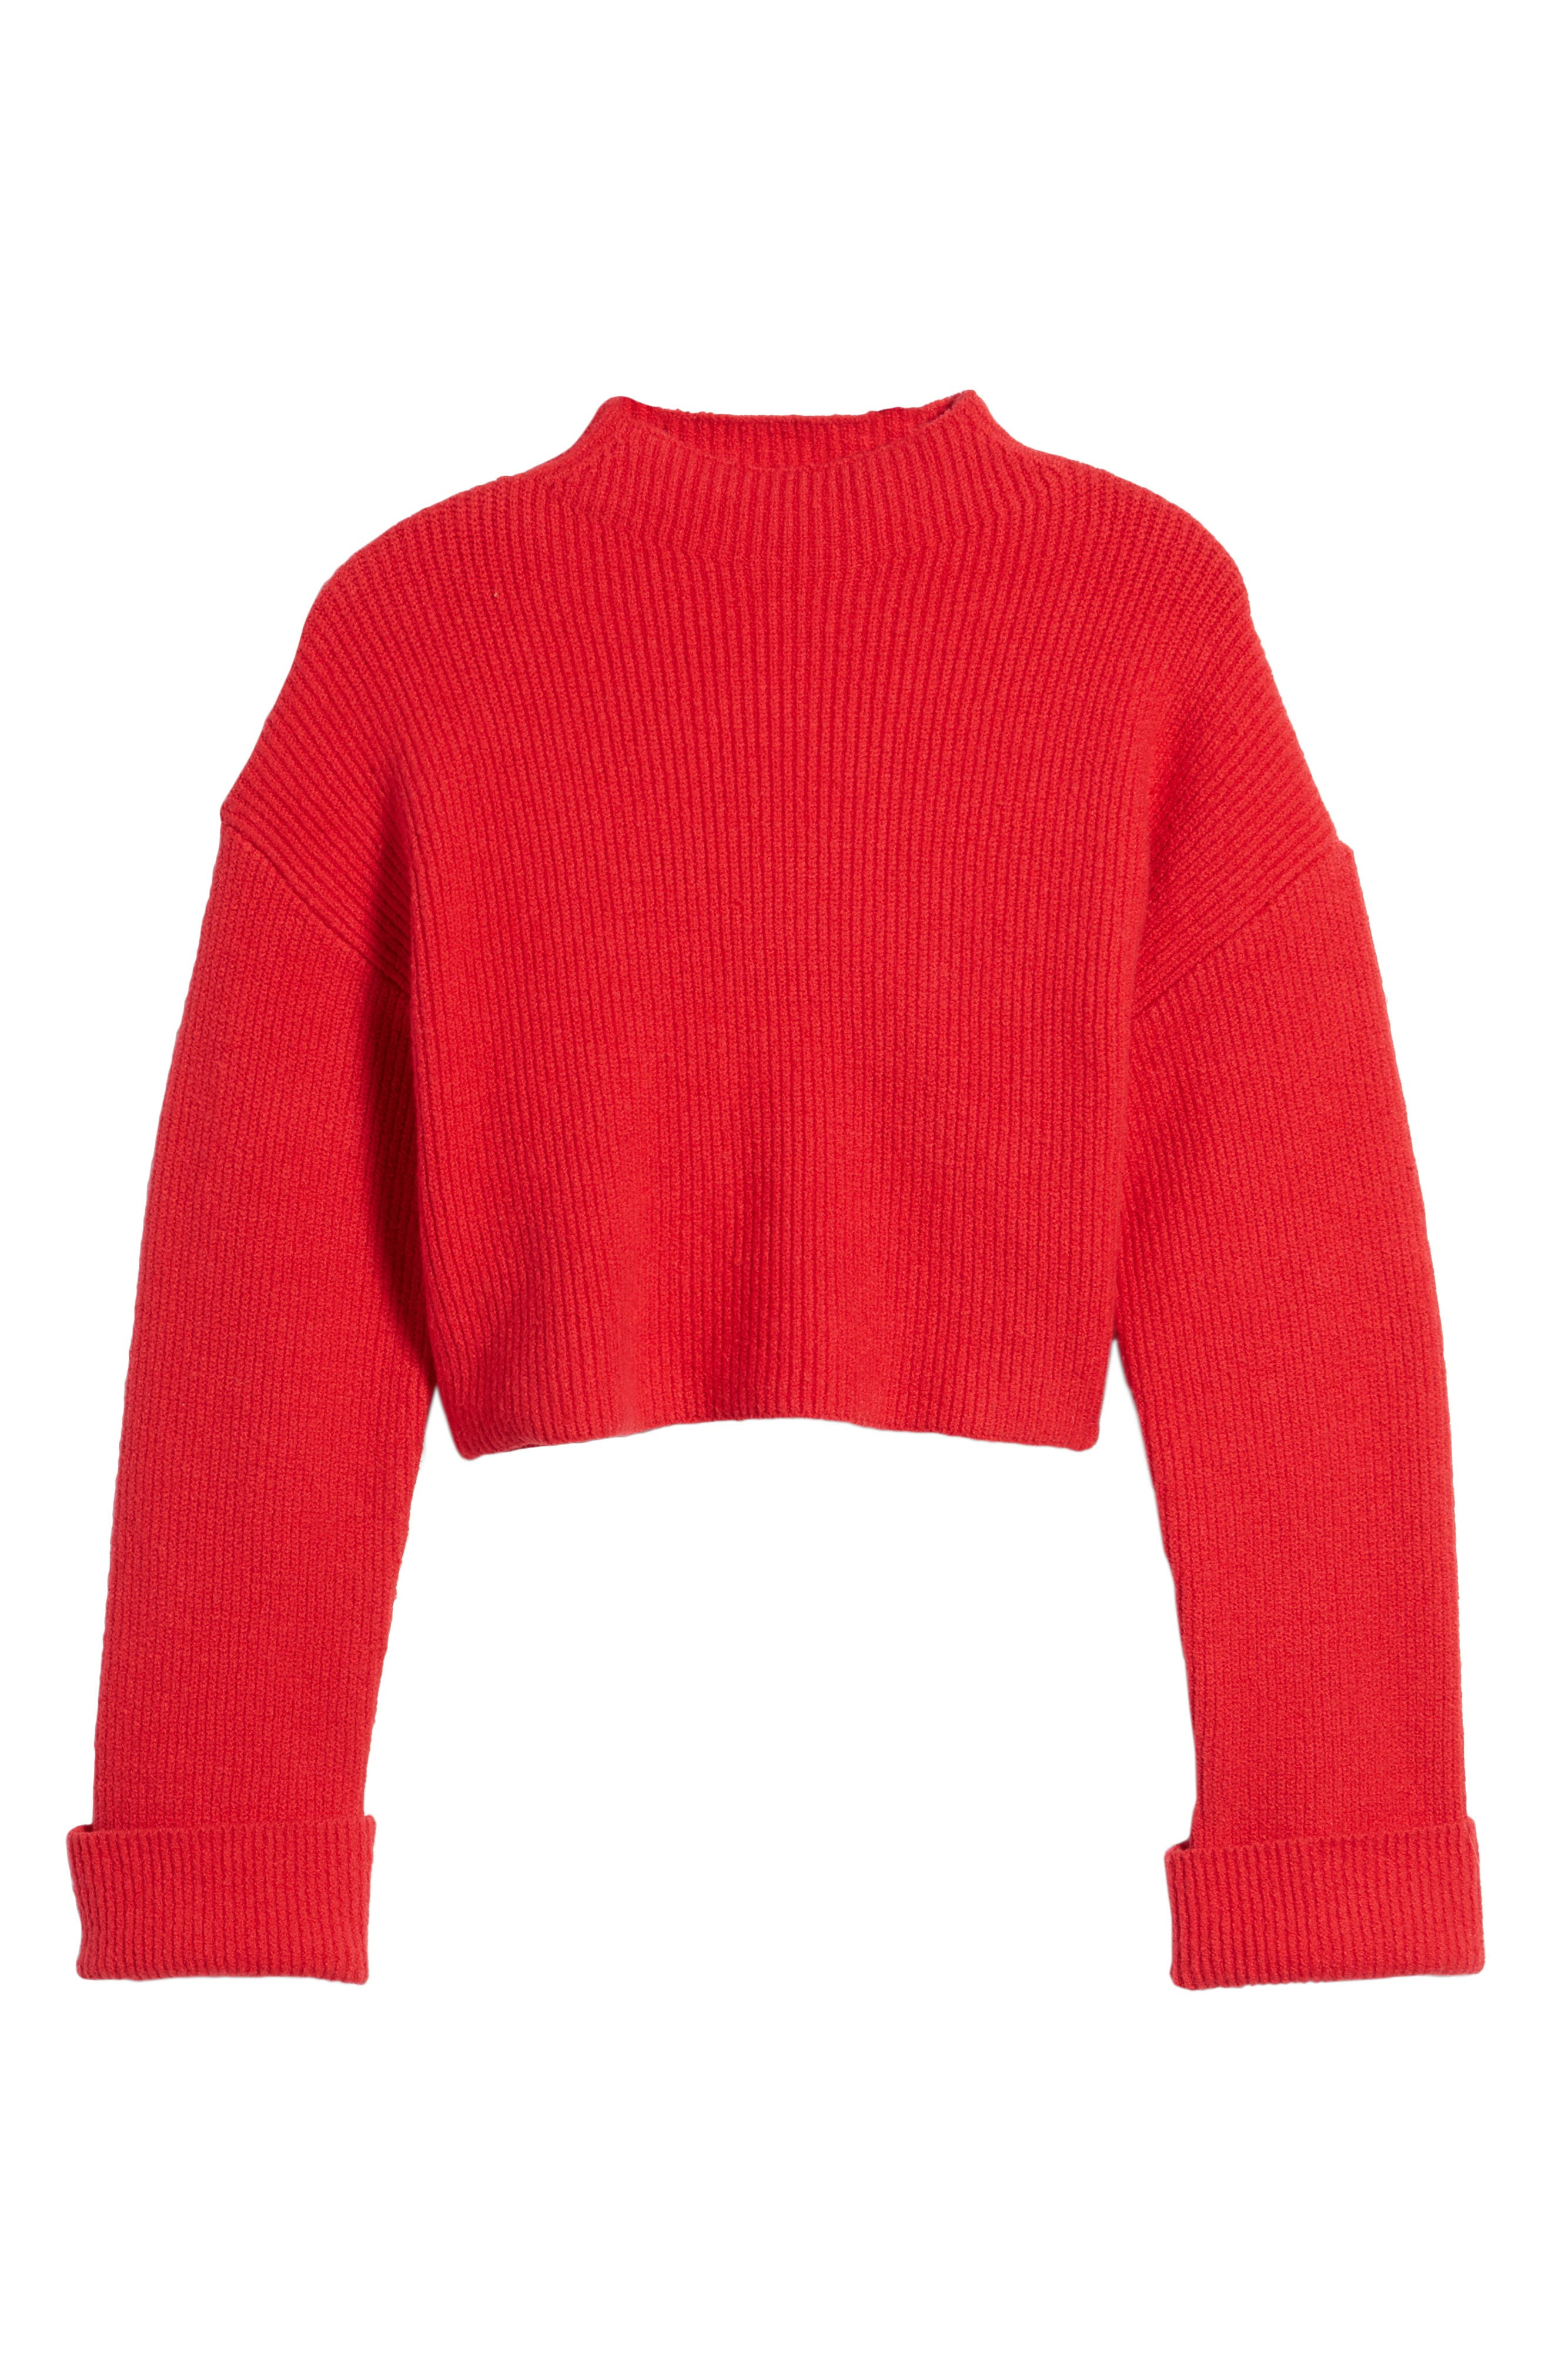 Wide Cuff Mock Neck Sweater,                             Alternate thumbnail 6, color,                             611